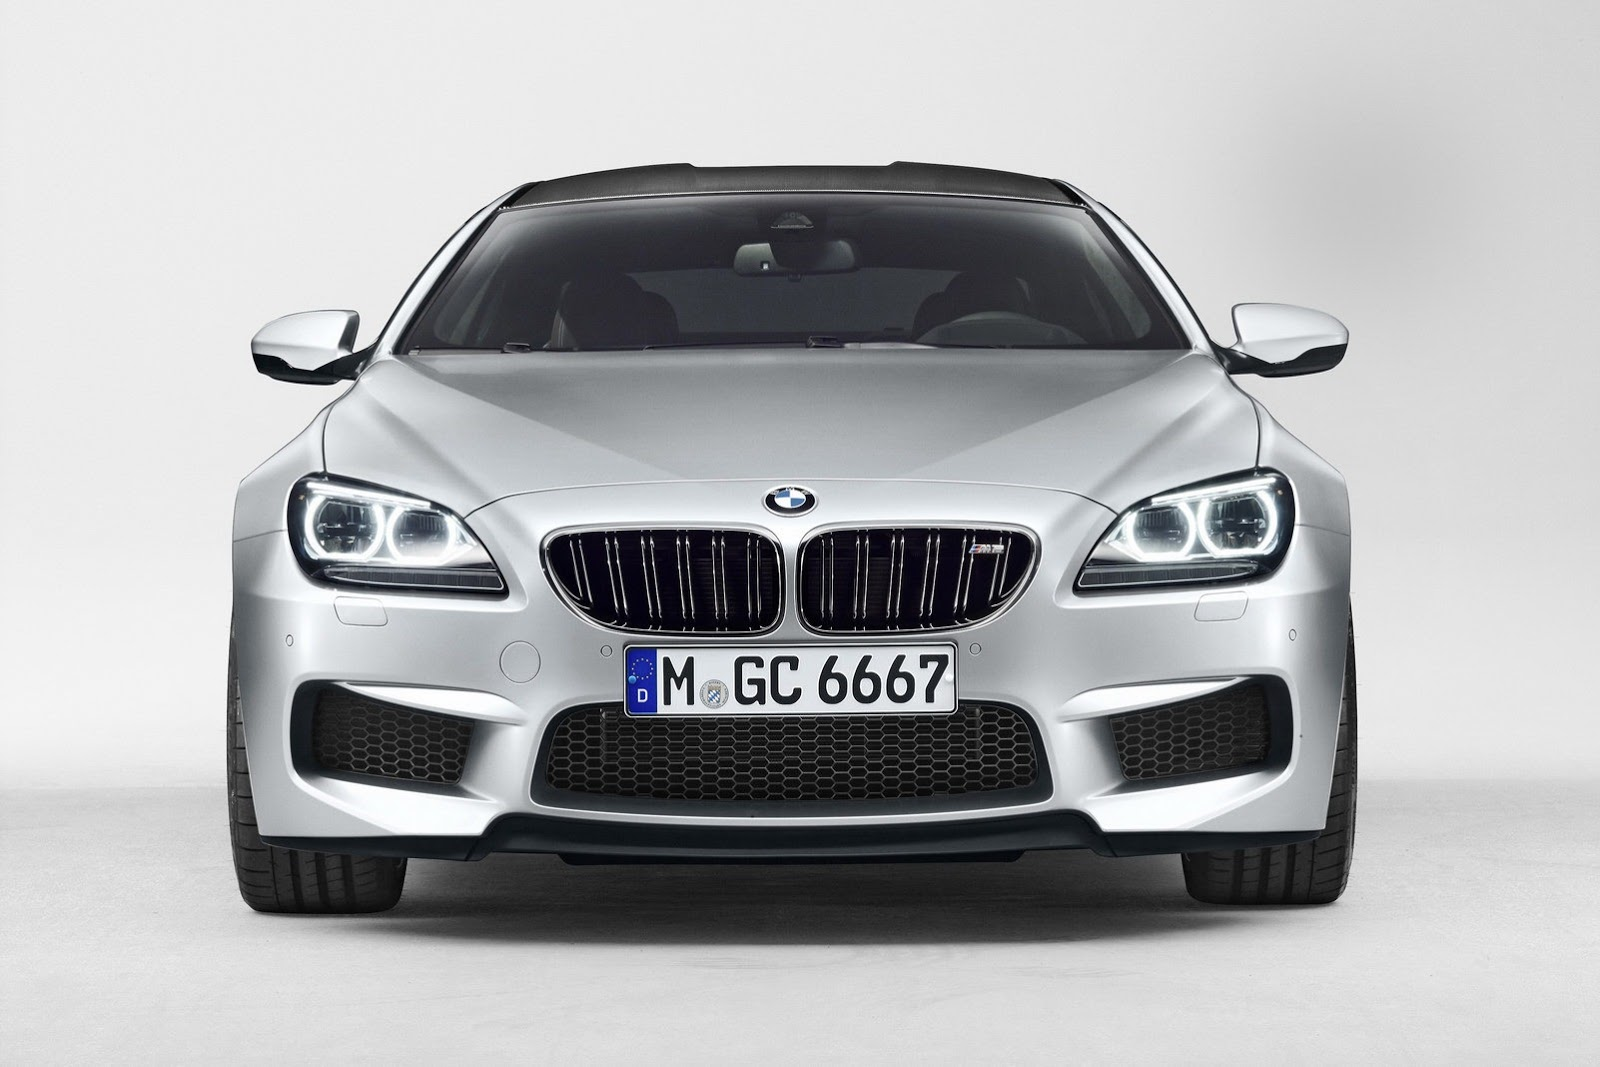 BMW Unveils M6 Grand Coupe With 560 HP Photo Gallery Wallpapers HD